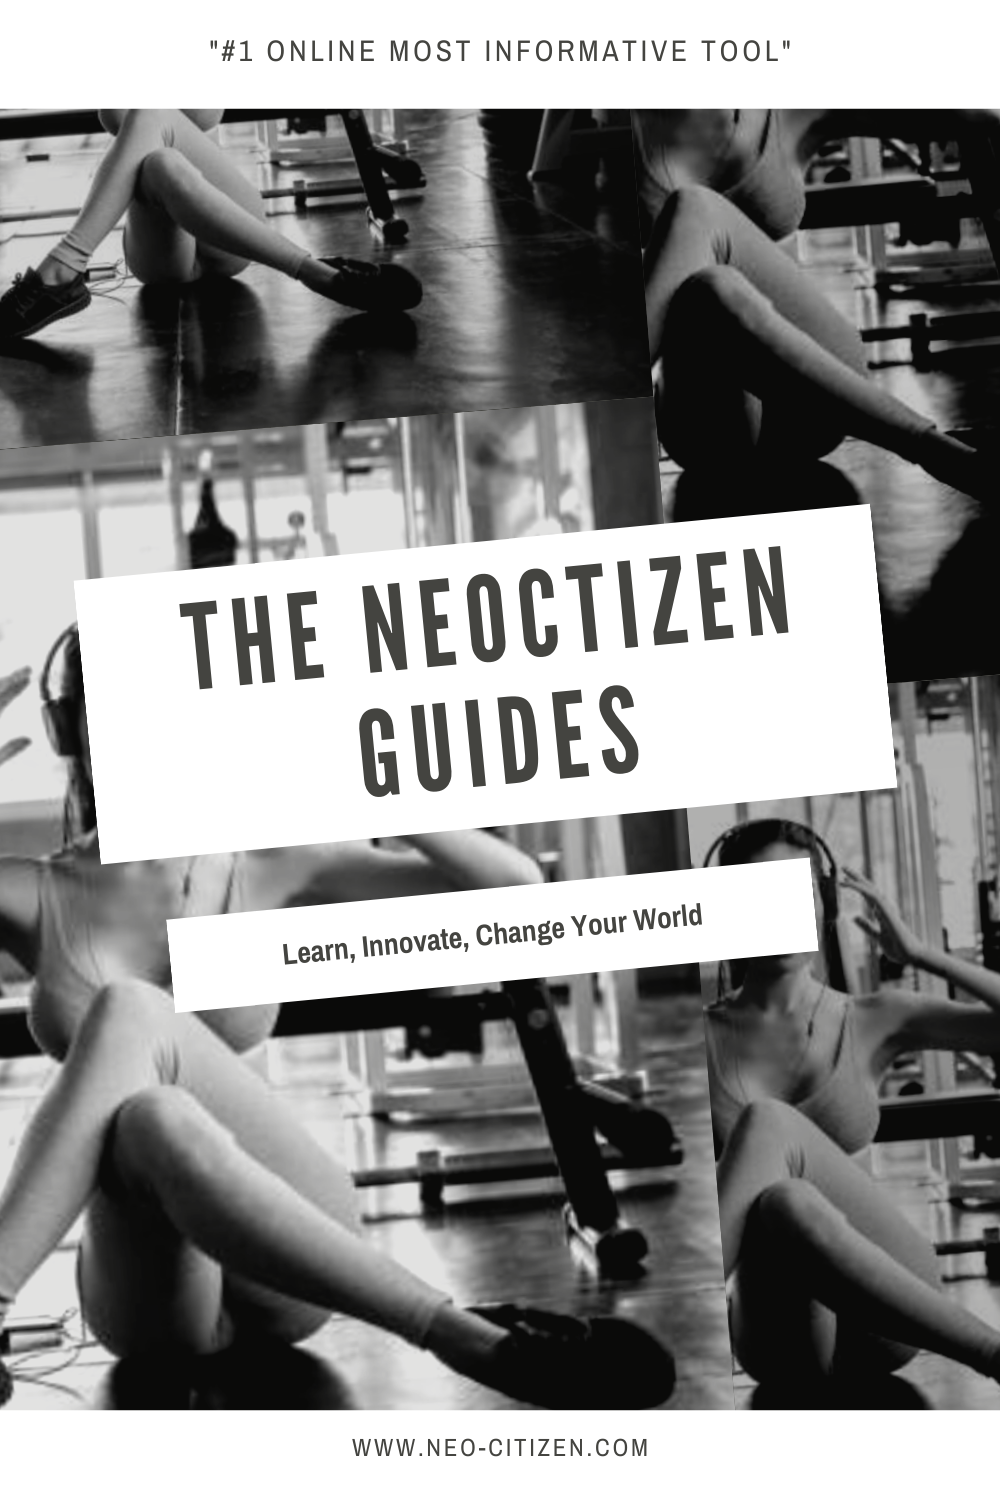 """Tips and activities to help you """"Learn, Innovate, & Change Your World."""" Our mission is for NeoCitize..."""